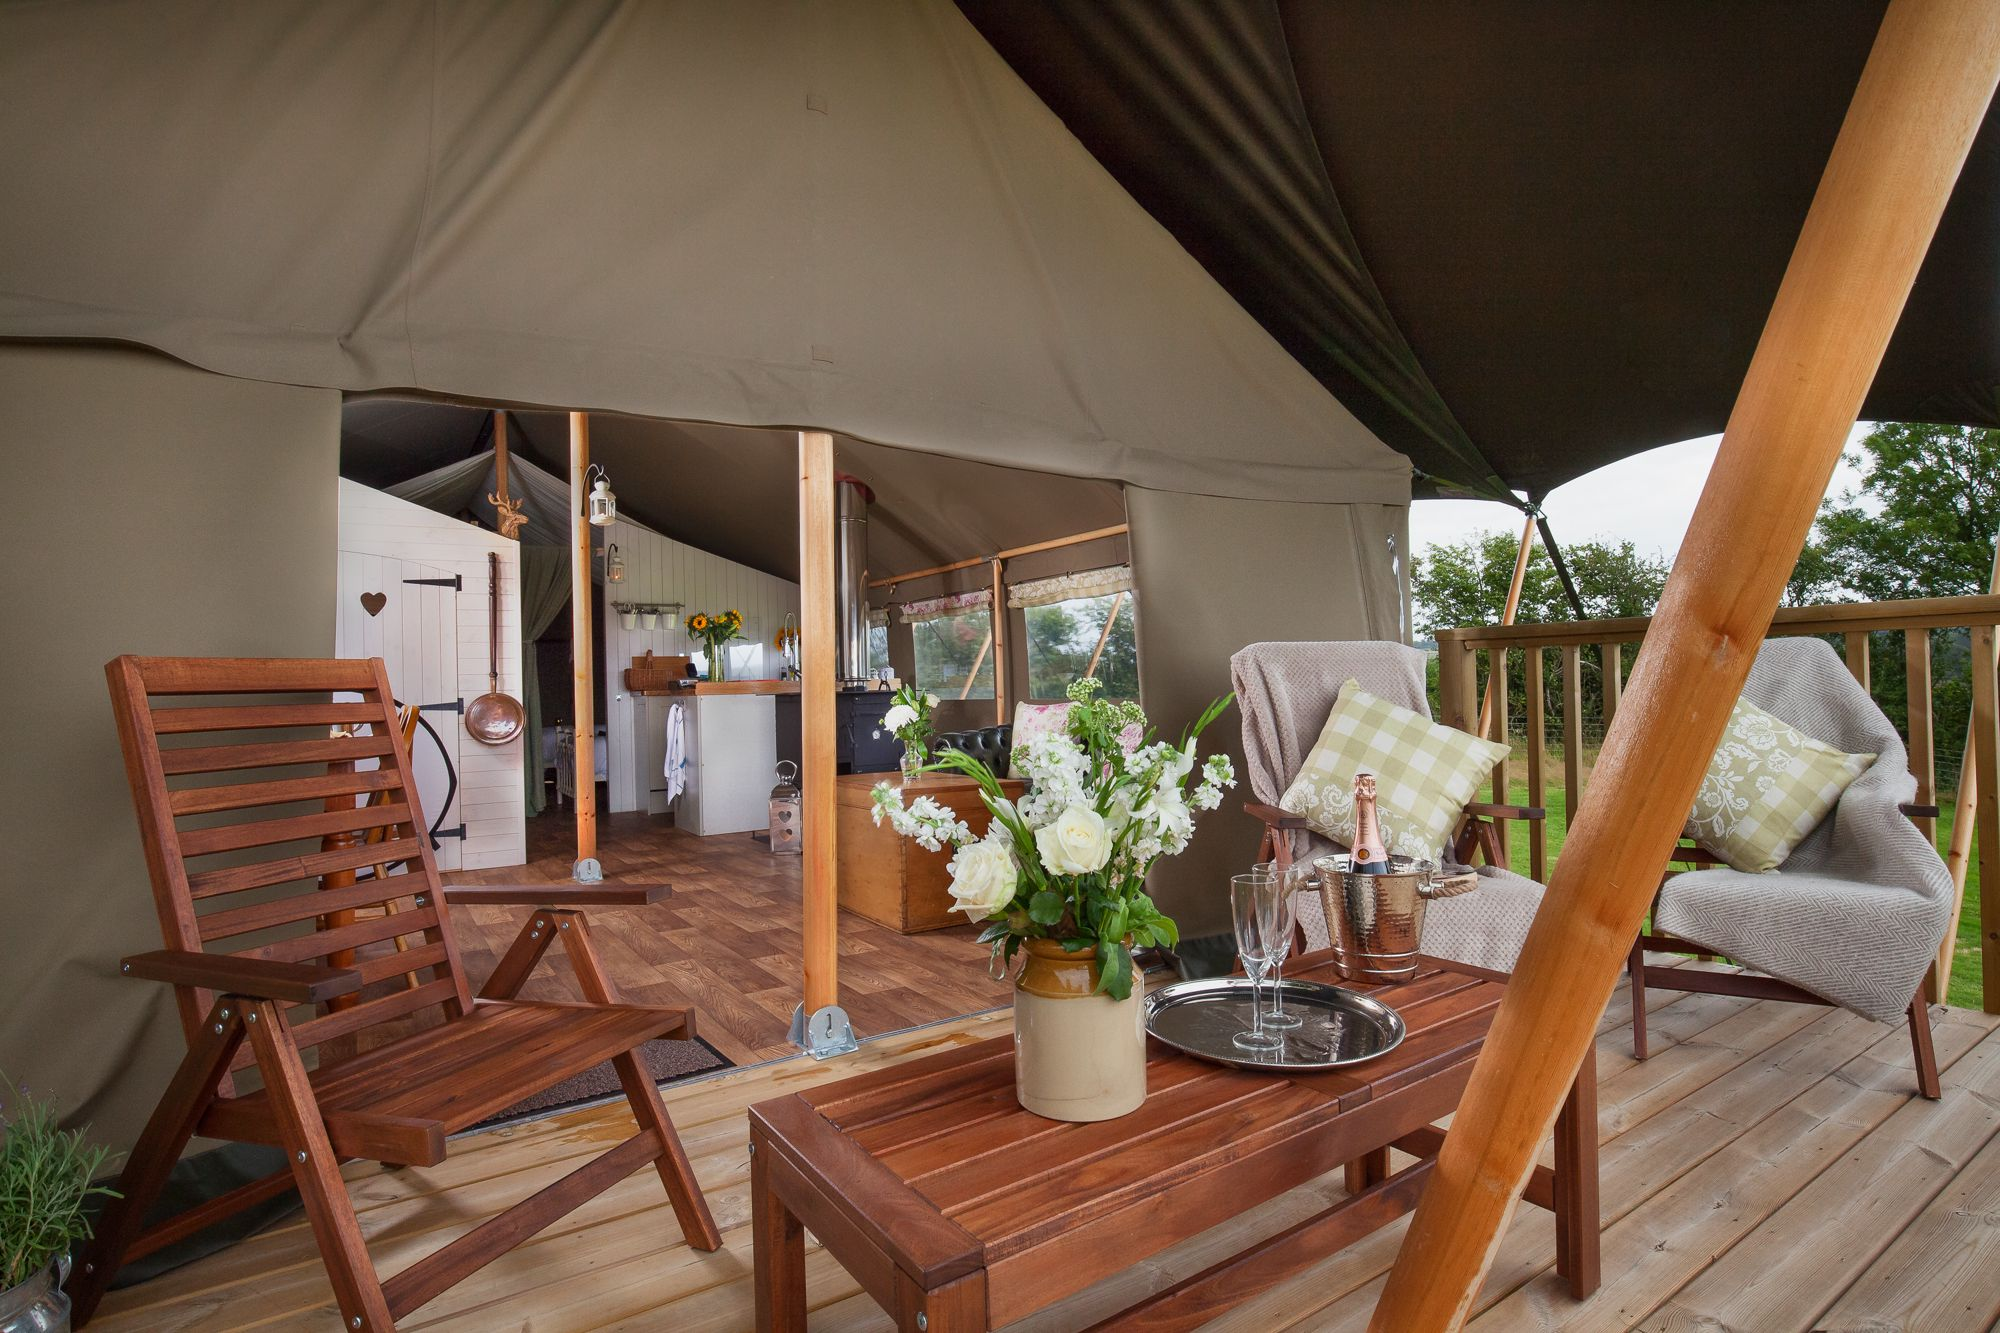 Glamping in Axminster holidays at Cool Places